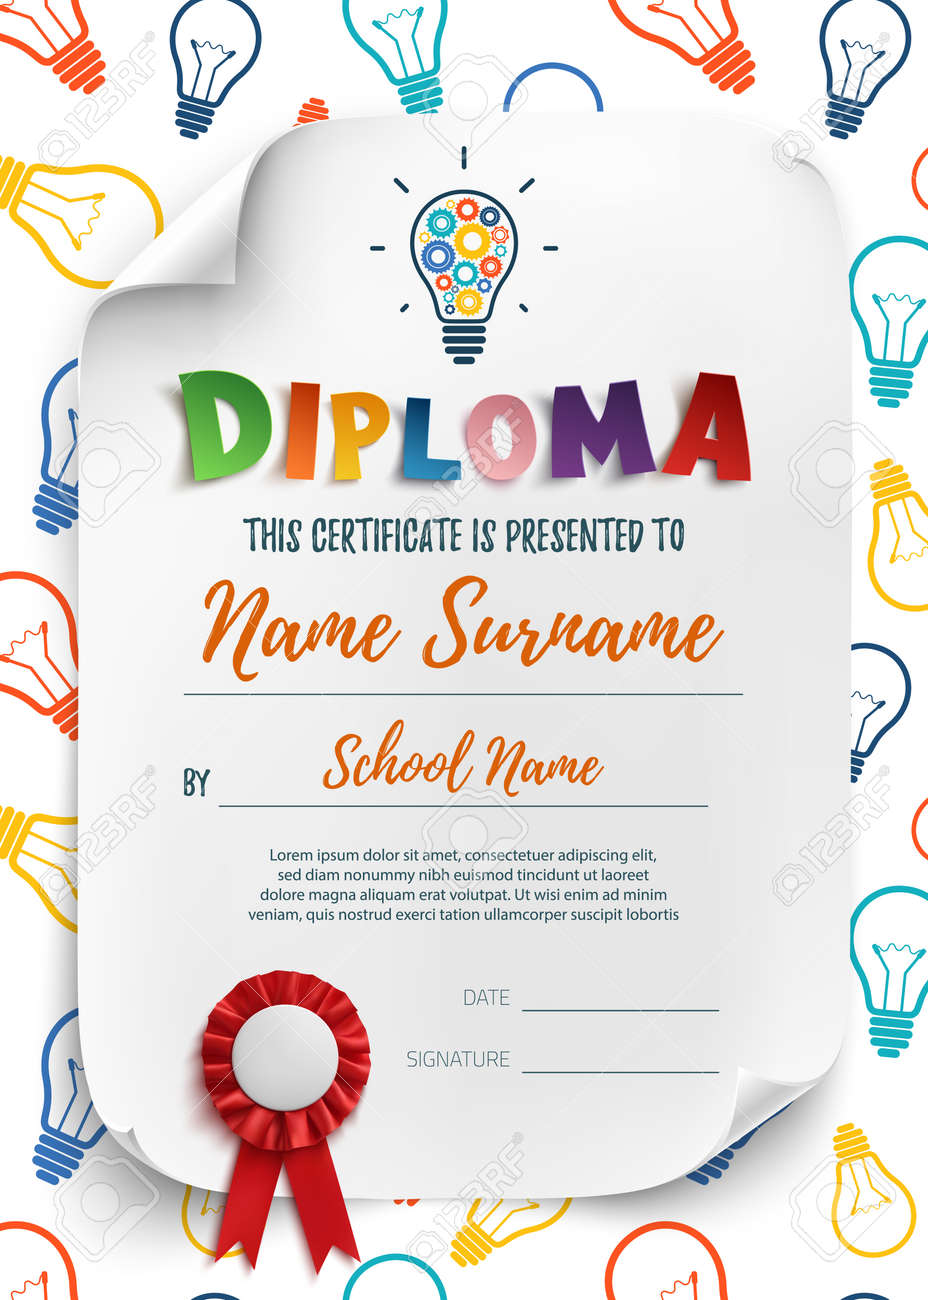 Diploma template for kids school preschool playschool diploma template for kids school preschool playschool certificate background wit colorful light 1betcityfo Images